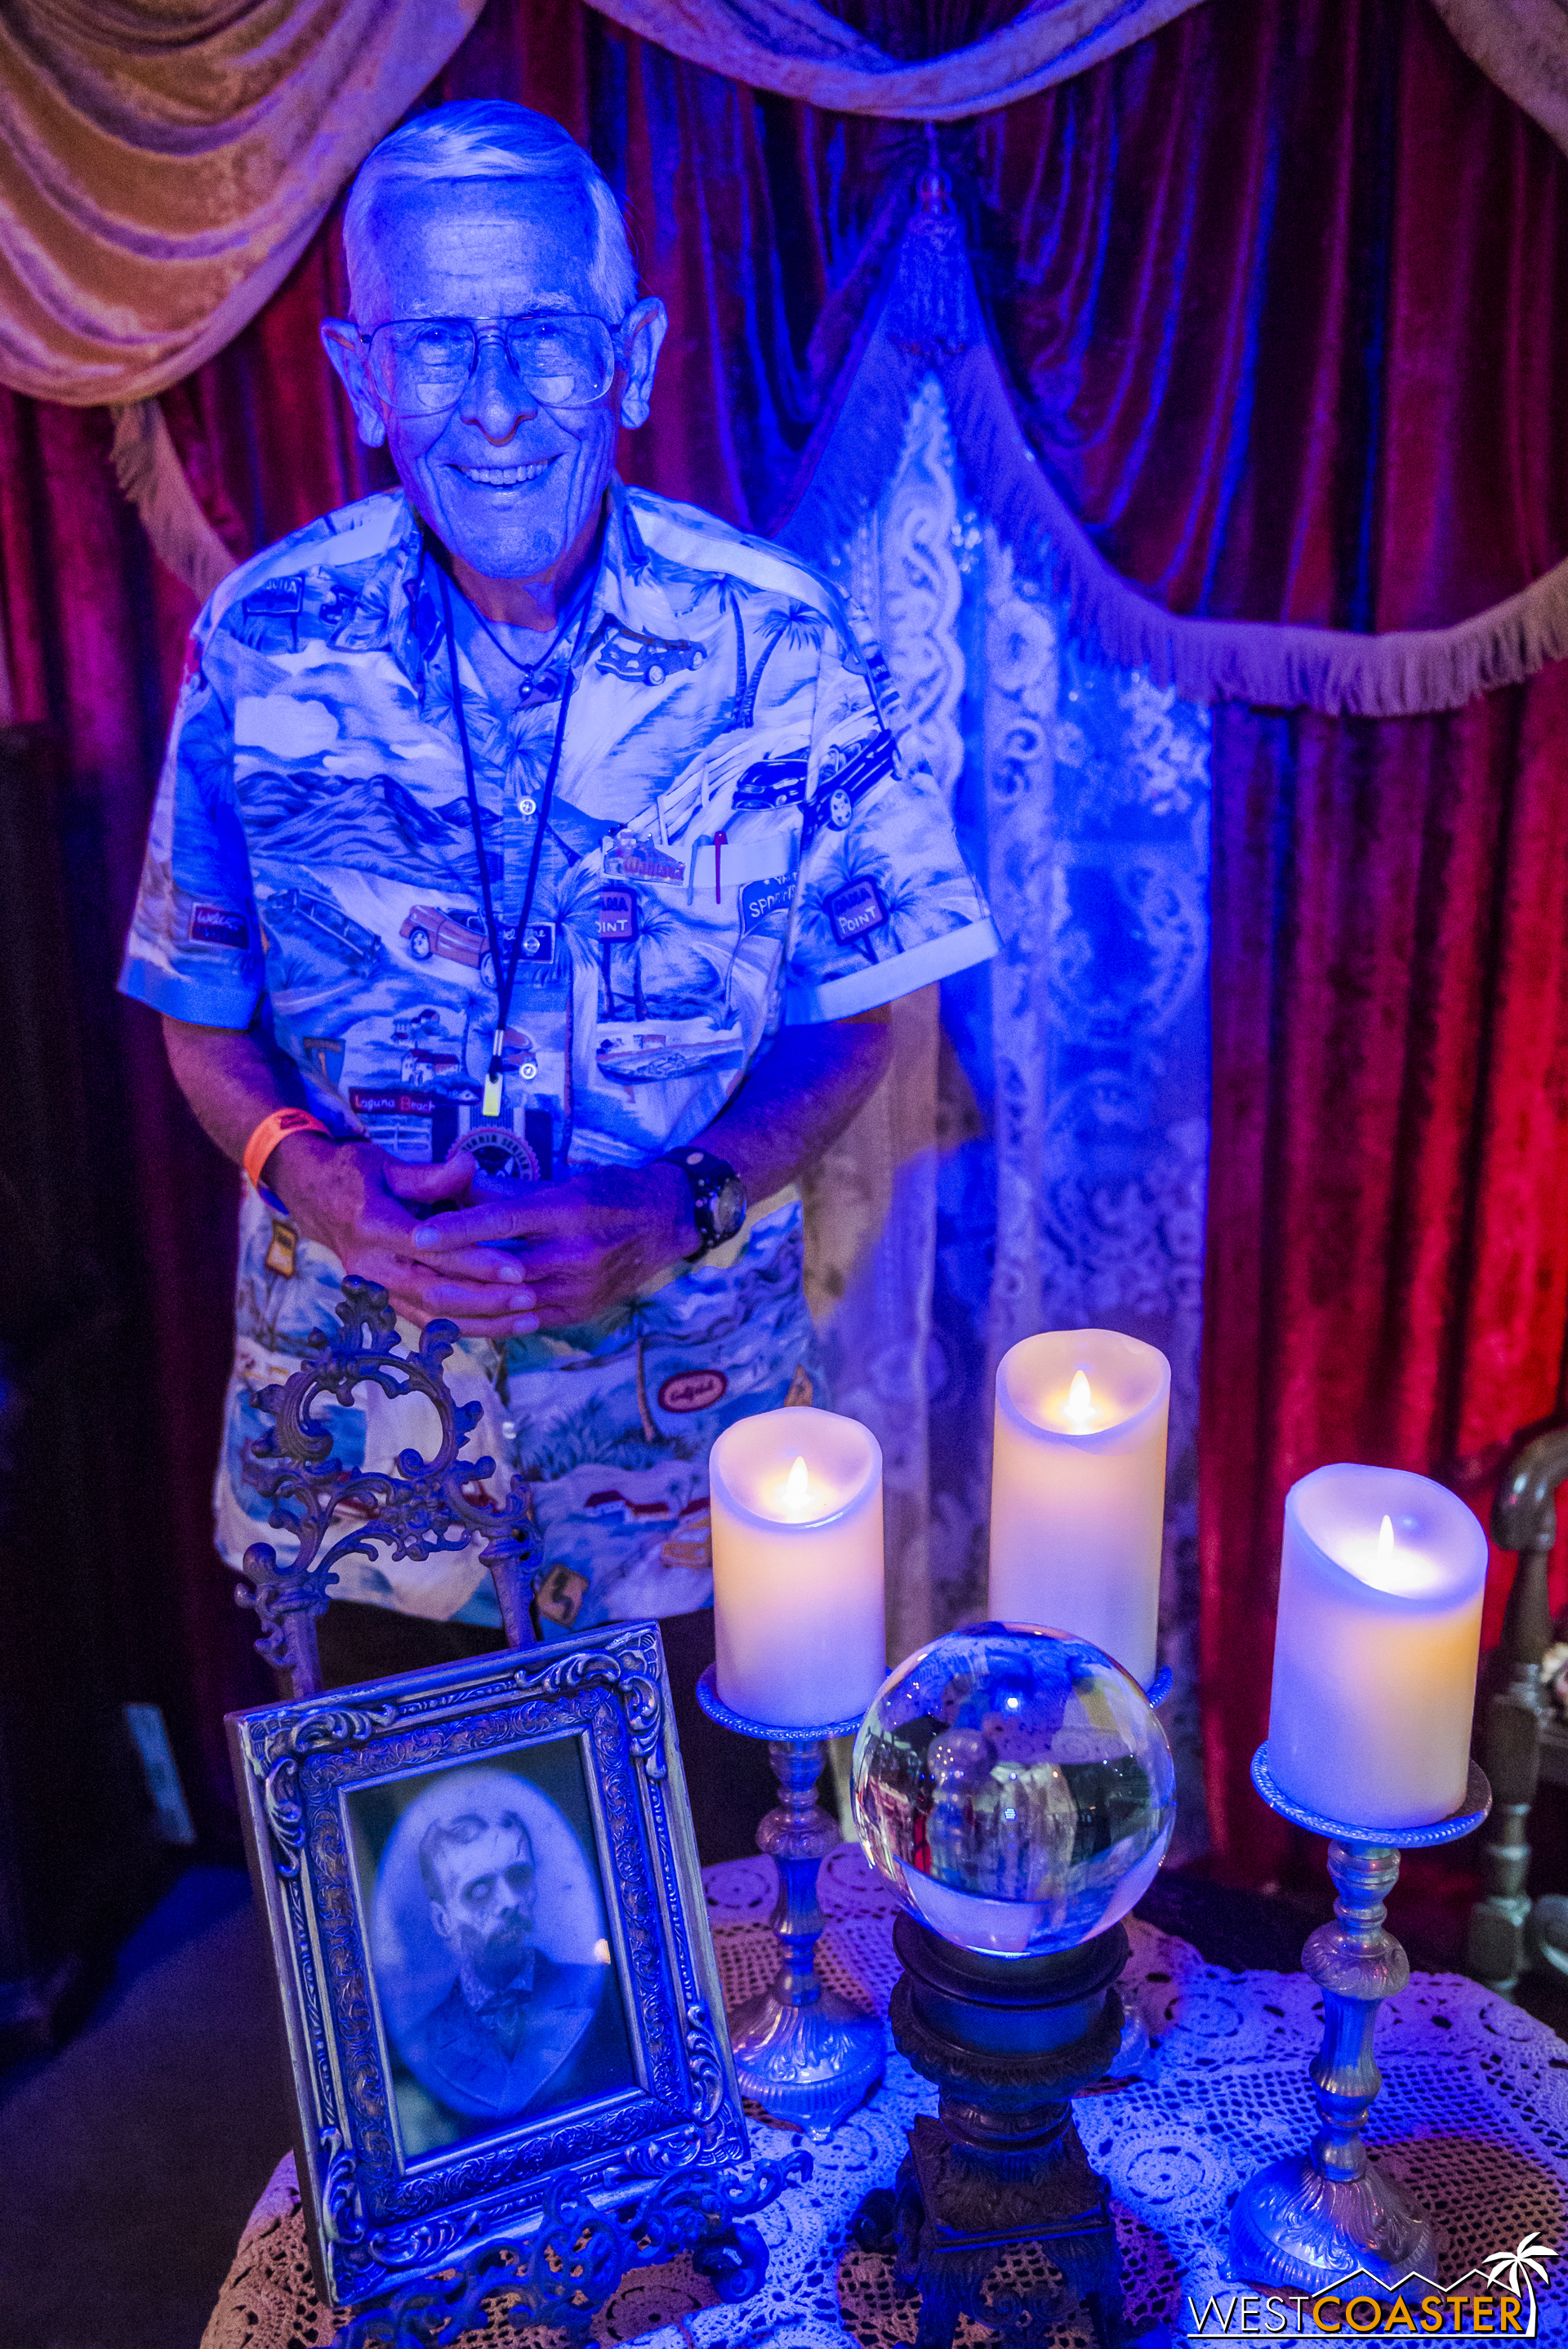 Legendary Walt Disney Imagineer Bob Gurr was on hand Sunday for a meet-and-greet and signing.